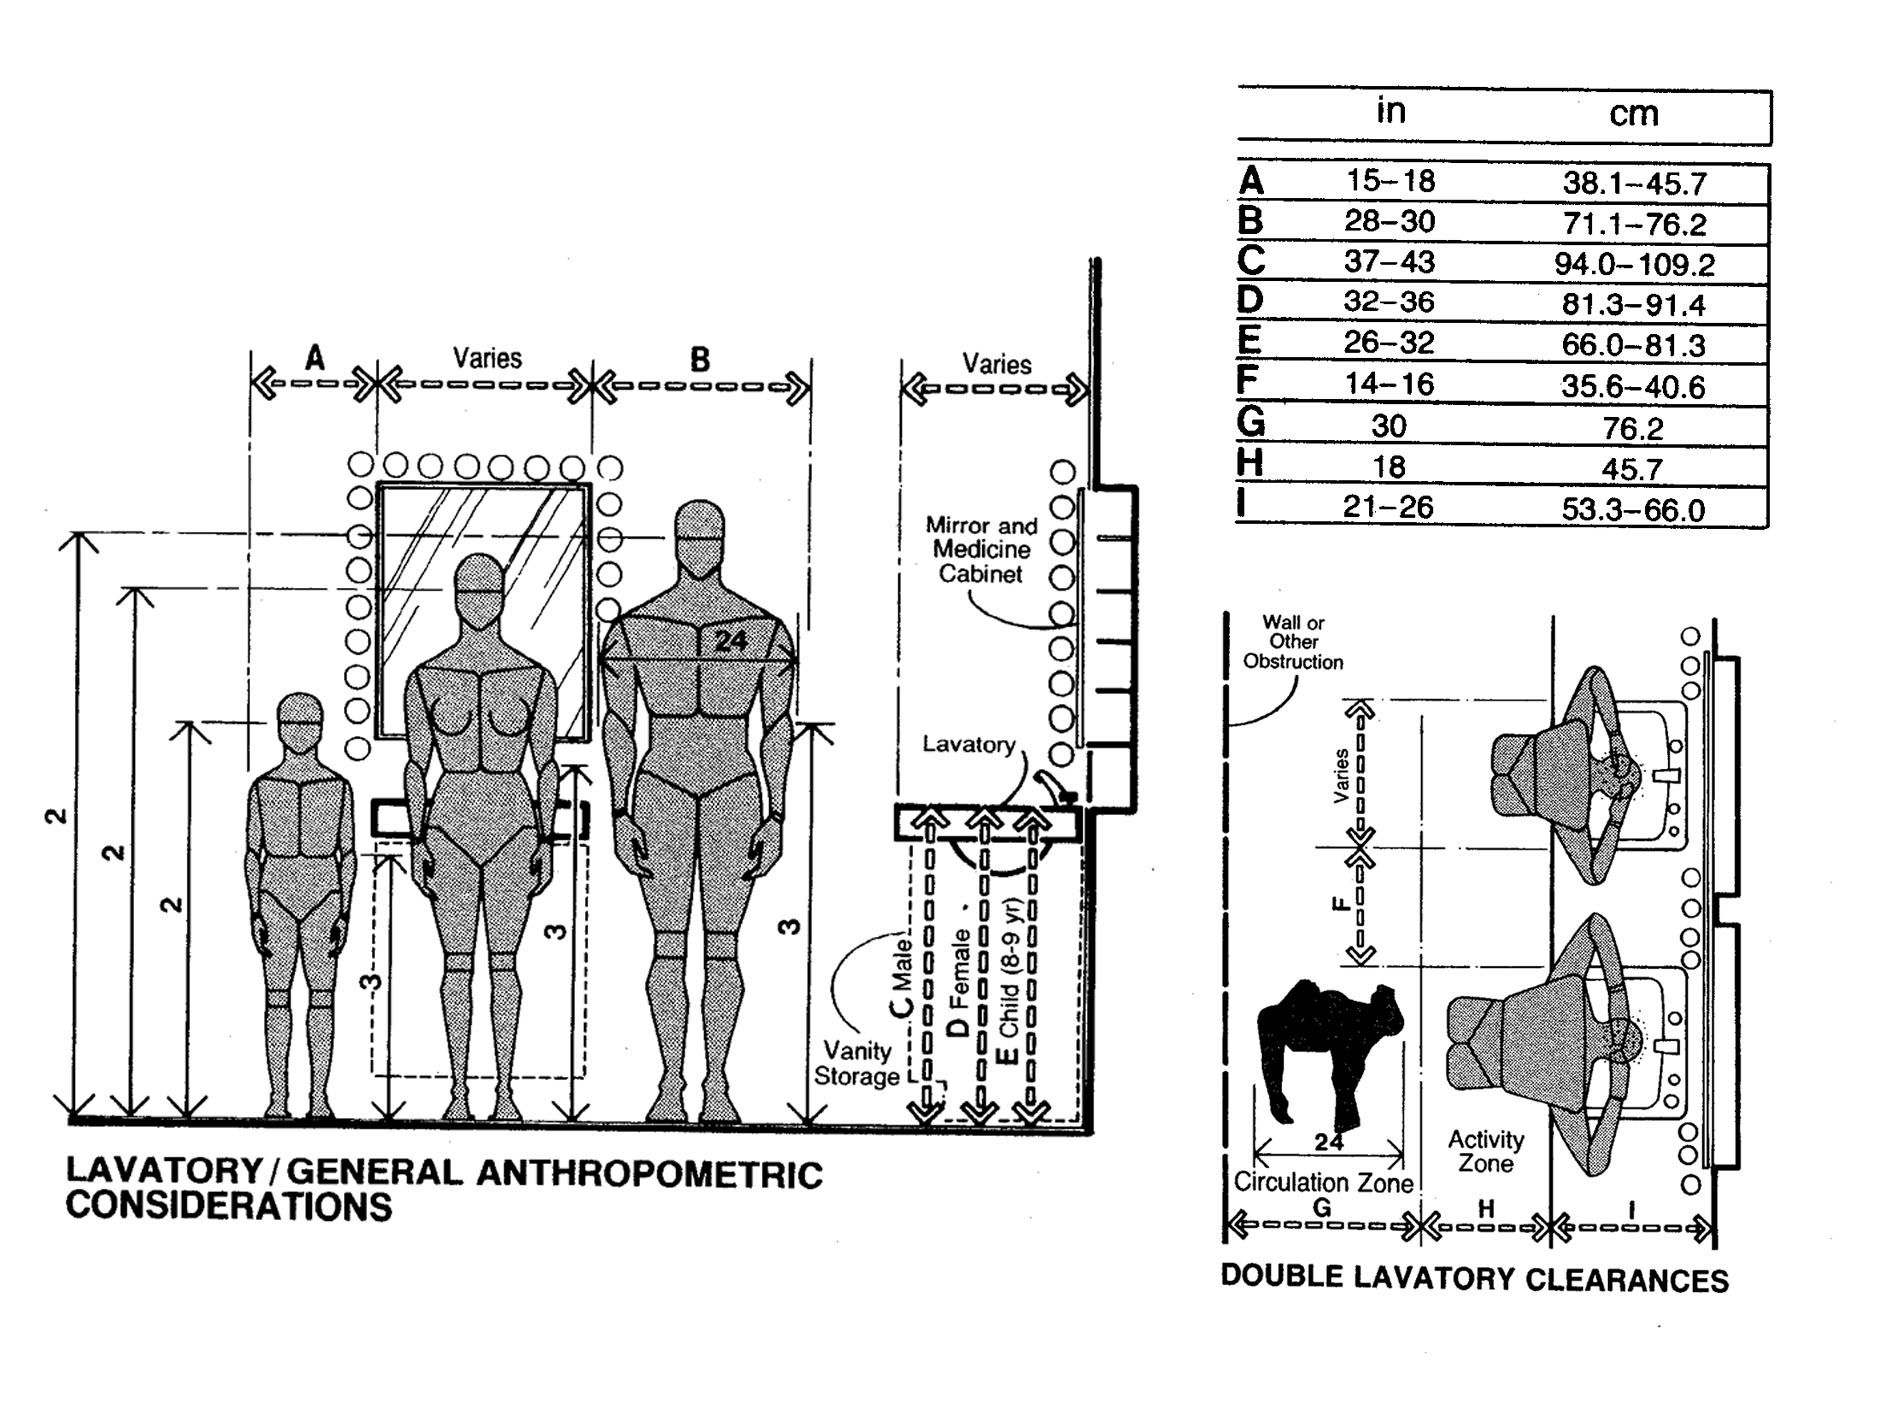 Bathroom dimensions meters - Bathroom Lavatory Clearences Human Dimension Interior Space Julius Panero Martin Zelnik